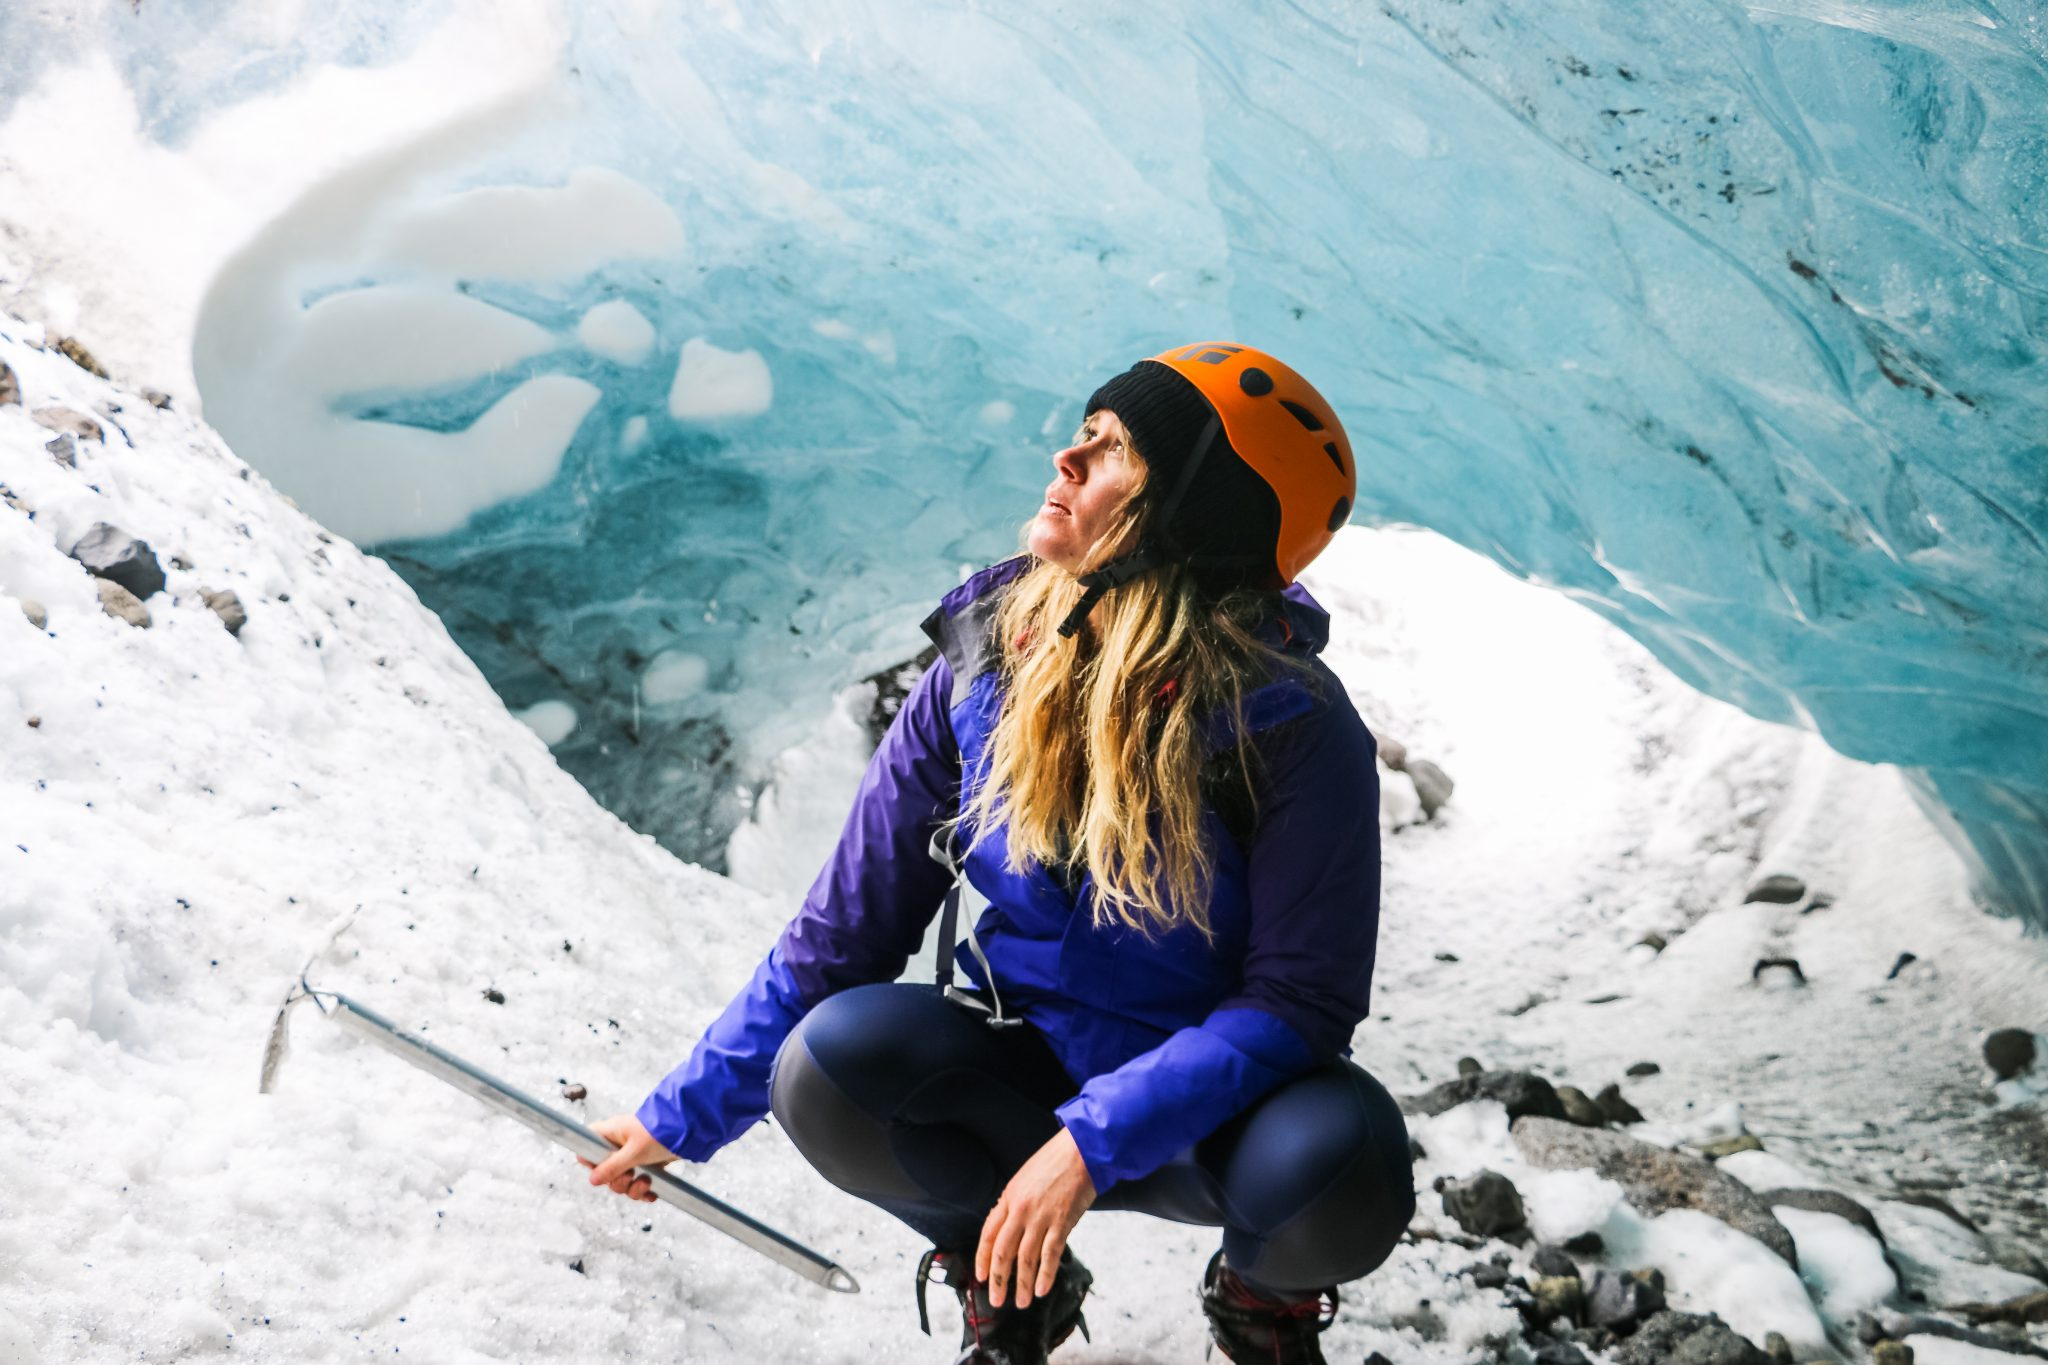 Blacks and Berghaus commissioned eco journalist, Sarah Roberts, to make a film